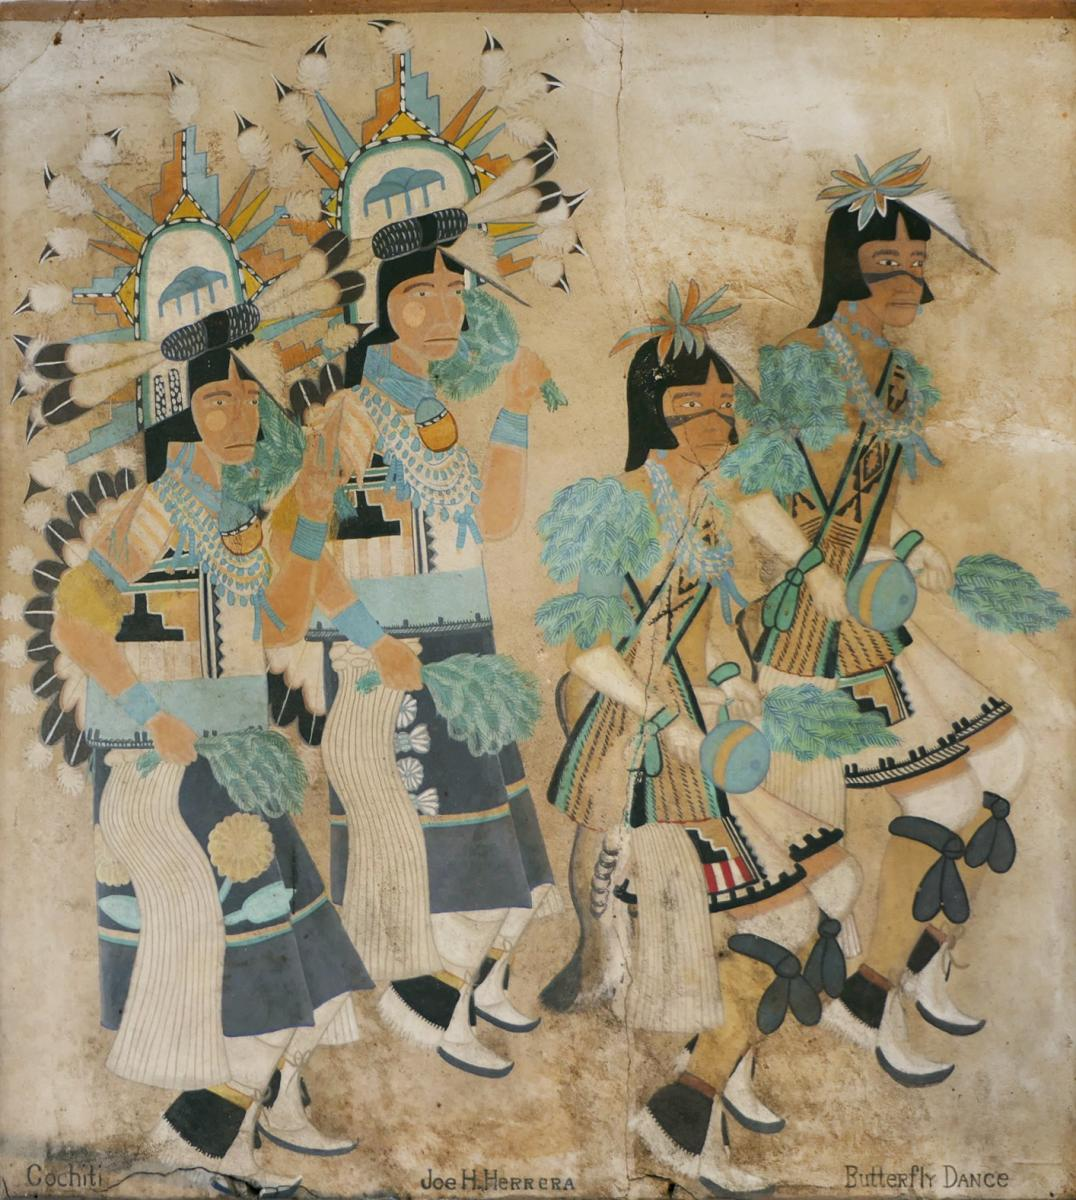 Historic Murals: Joe H. Herrera's Cochiti Butterfly Dancers, New Mexico Magazine